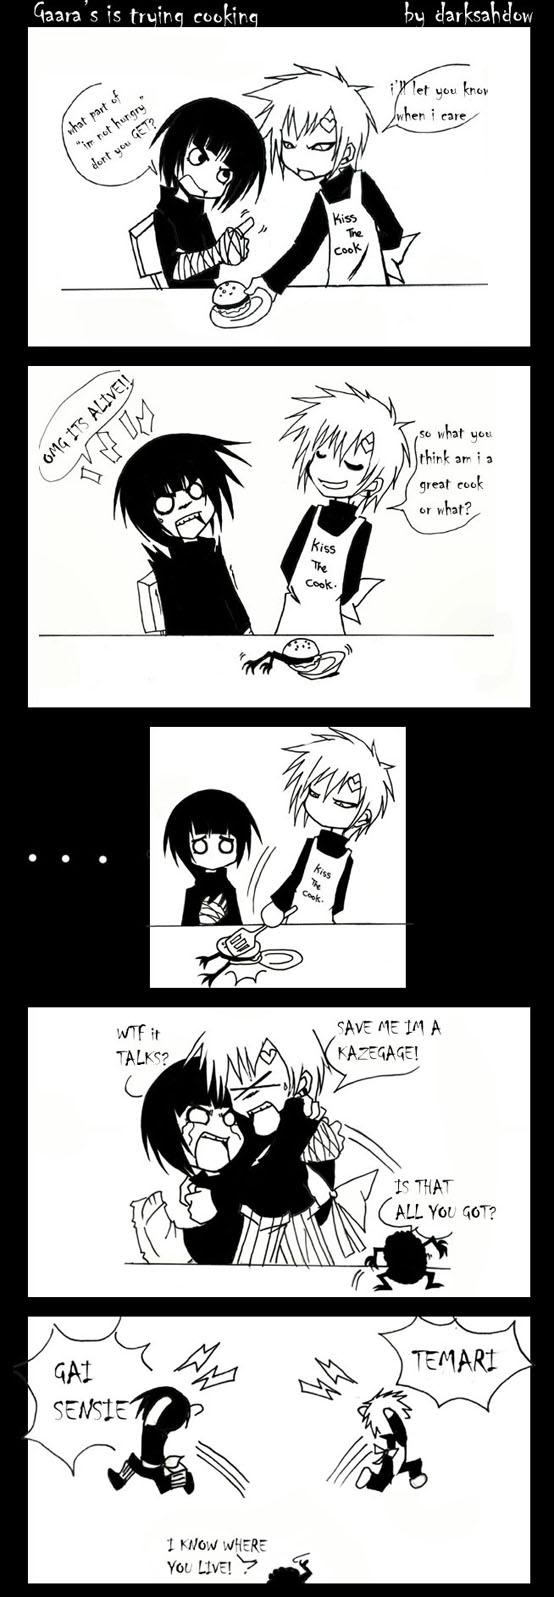 Chistes de Naruto xD Gaara_is_trying_Cooking